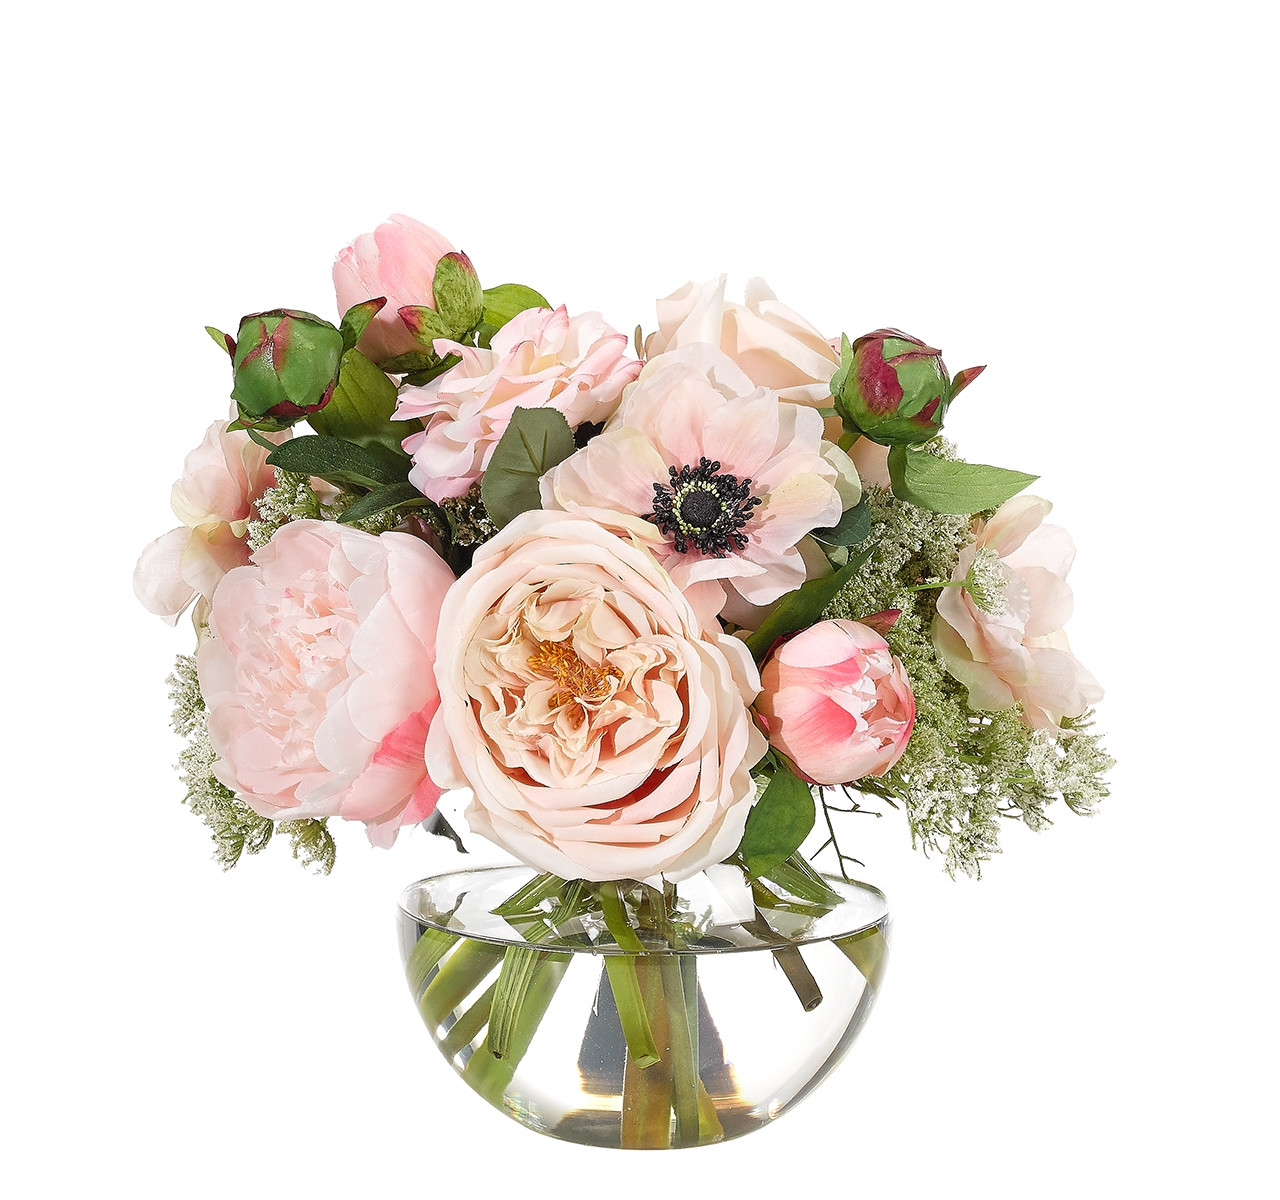 gorham tulip bouquet vase of ndi faux florals and botanicals intended for custom orders